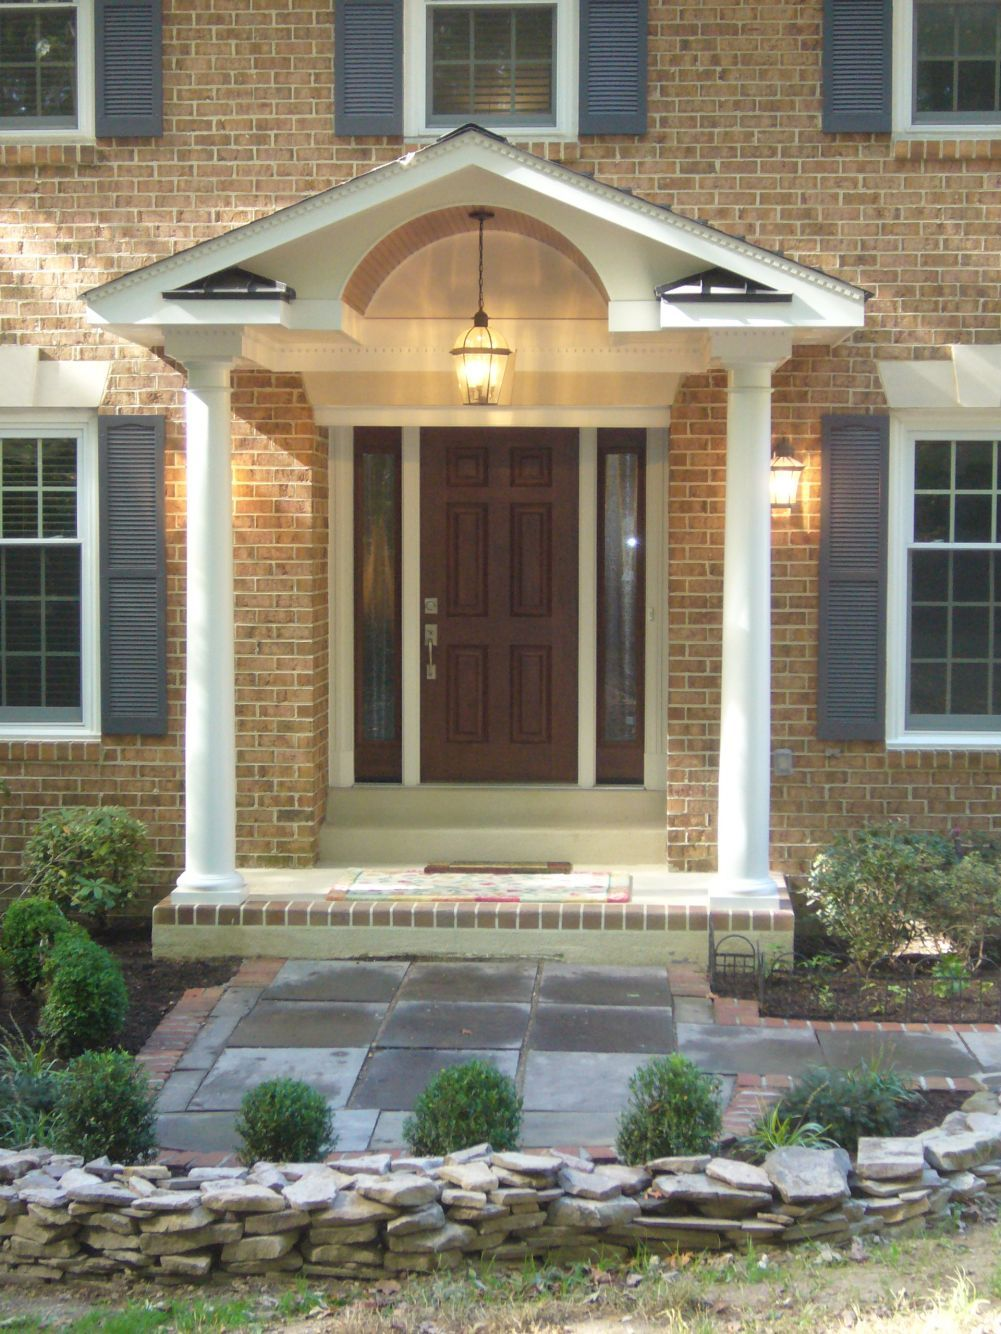 Front Porch Design Ideas the Find This Pin And More On Remodeling Ideas Exterior Interior Lovely Front Porch Design